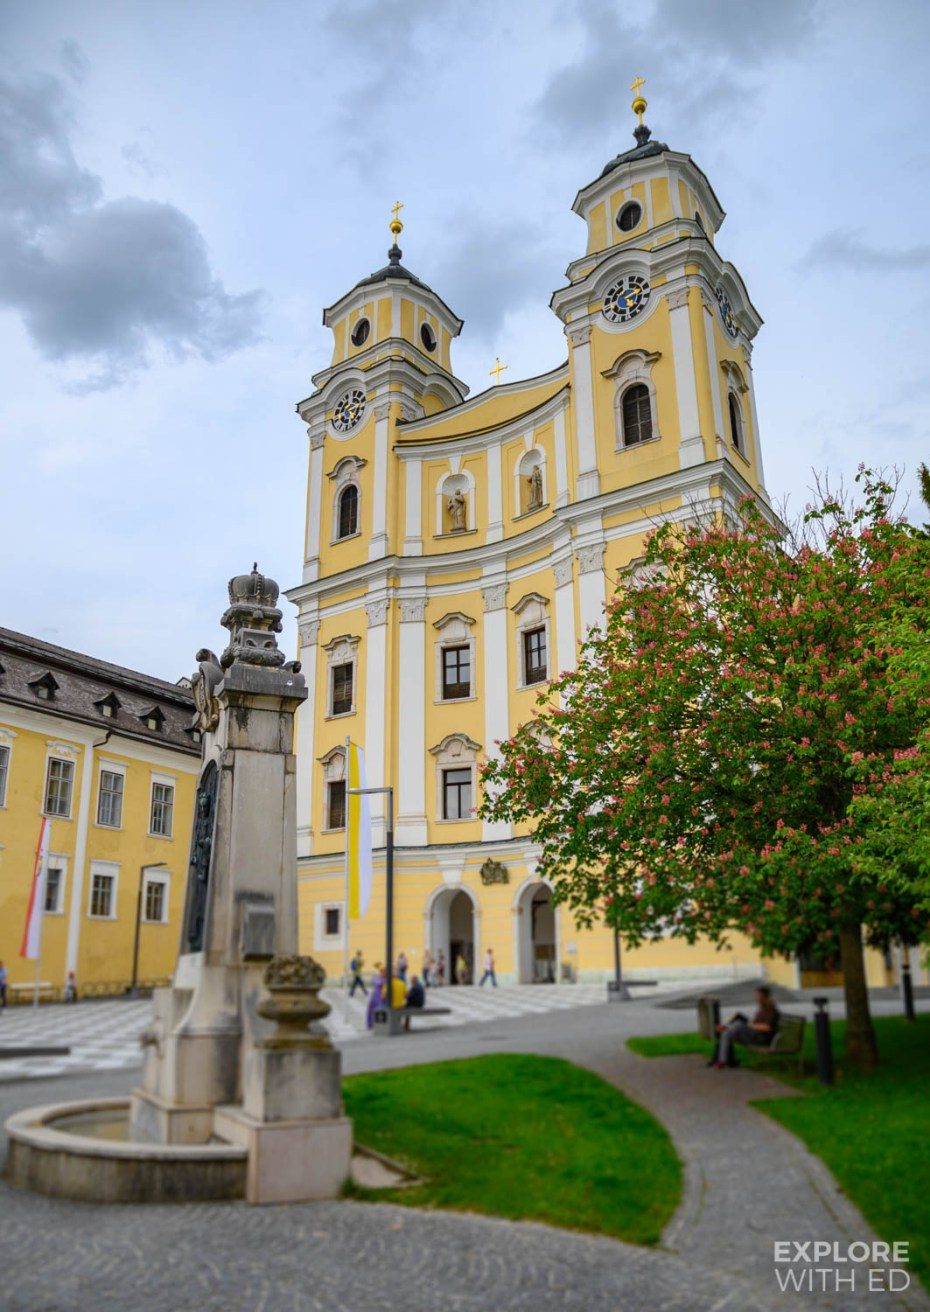 The church in Mondsee using for the Wedding scene in The Sound of Music